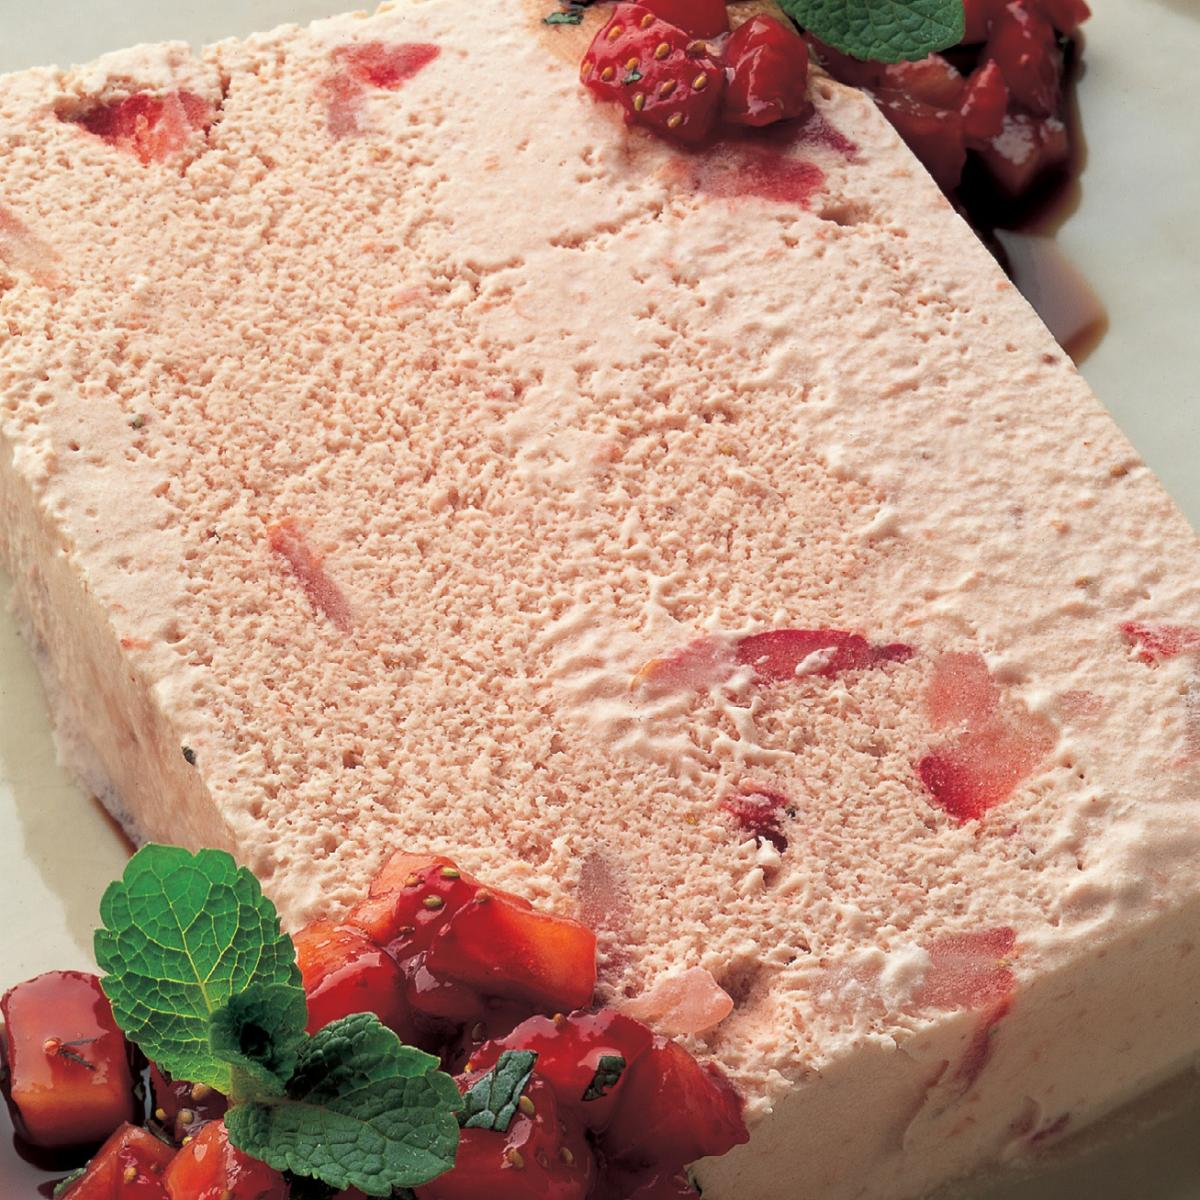 Vegetarian strawberry and balsamic ice cream with sweet strawberry and mint salsa